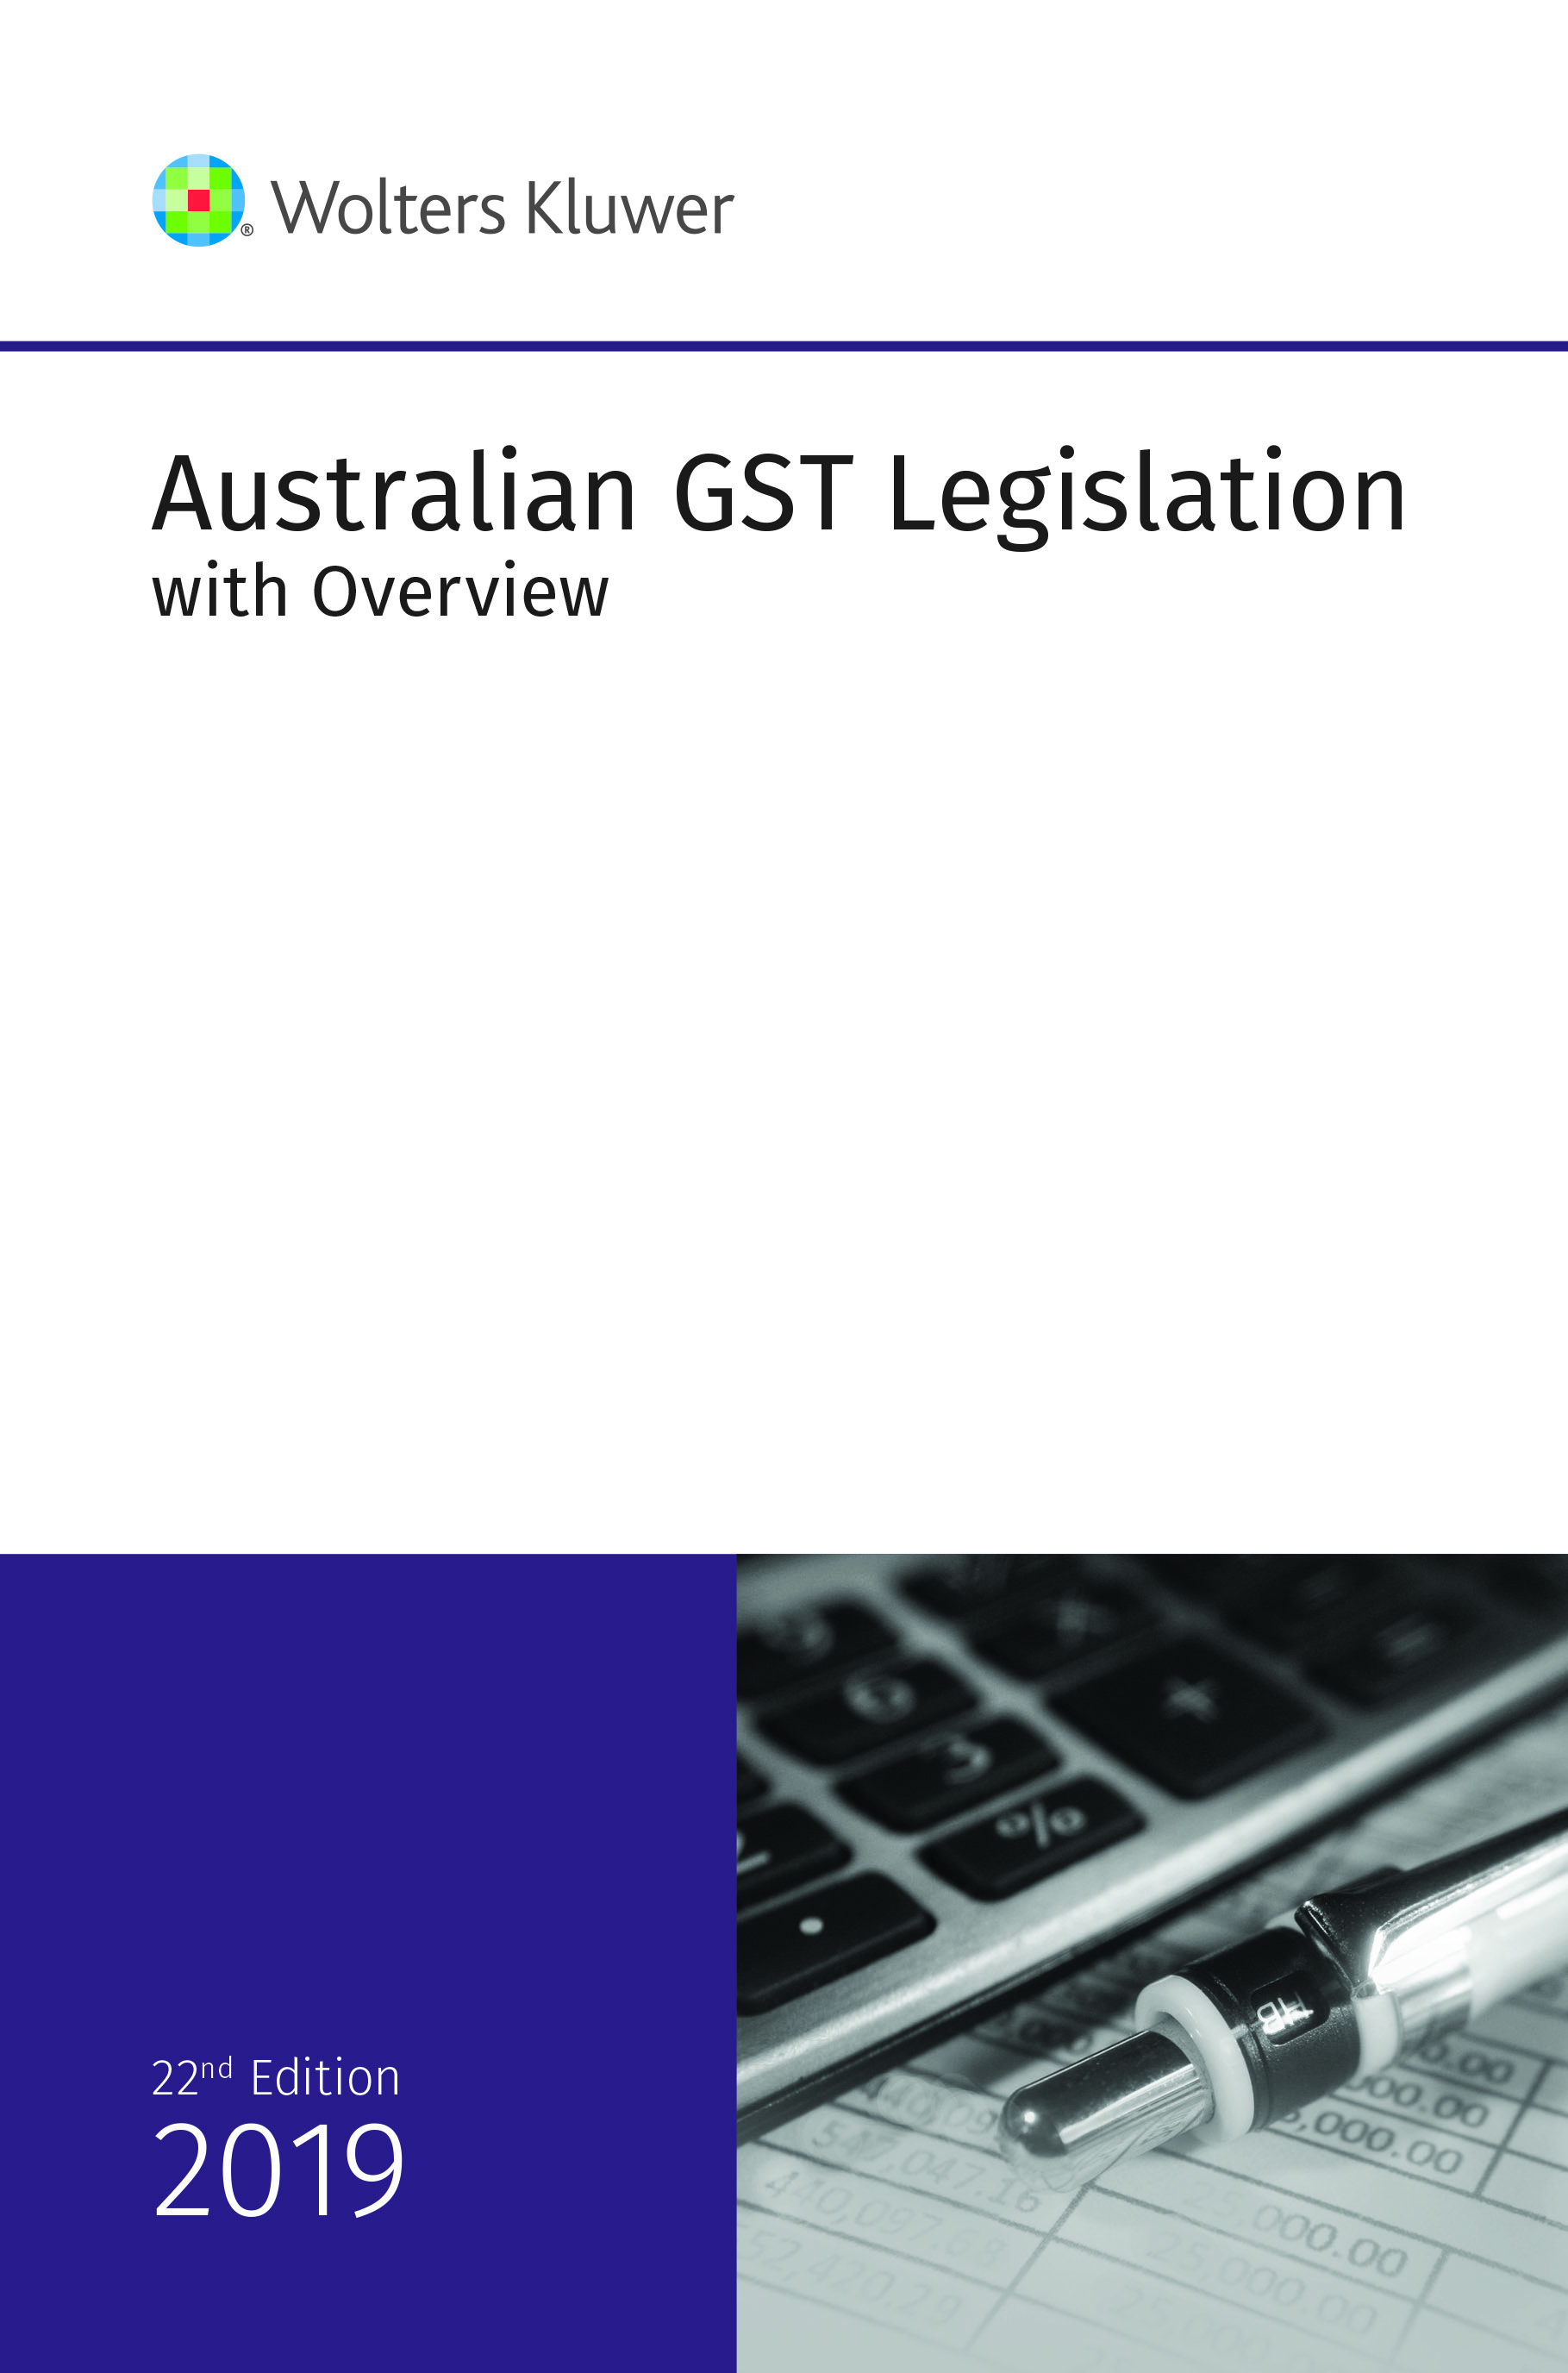 Australian GST Legislation with Overview 2019